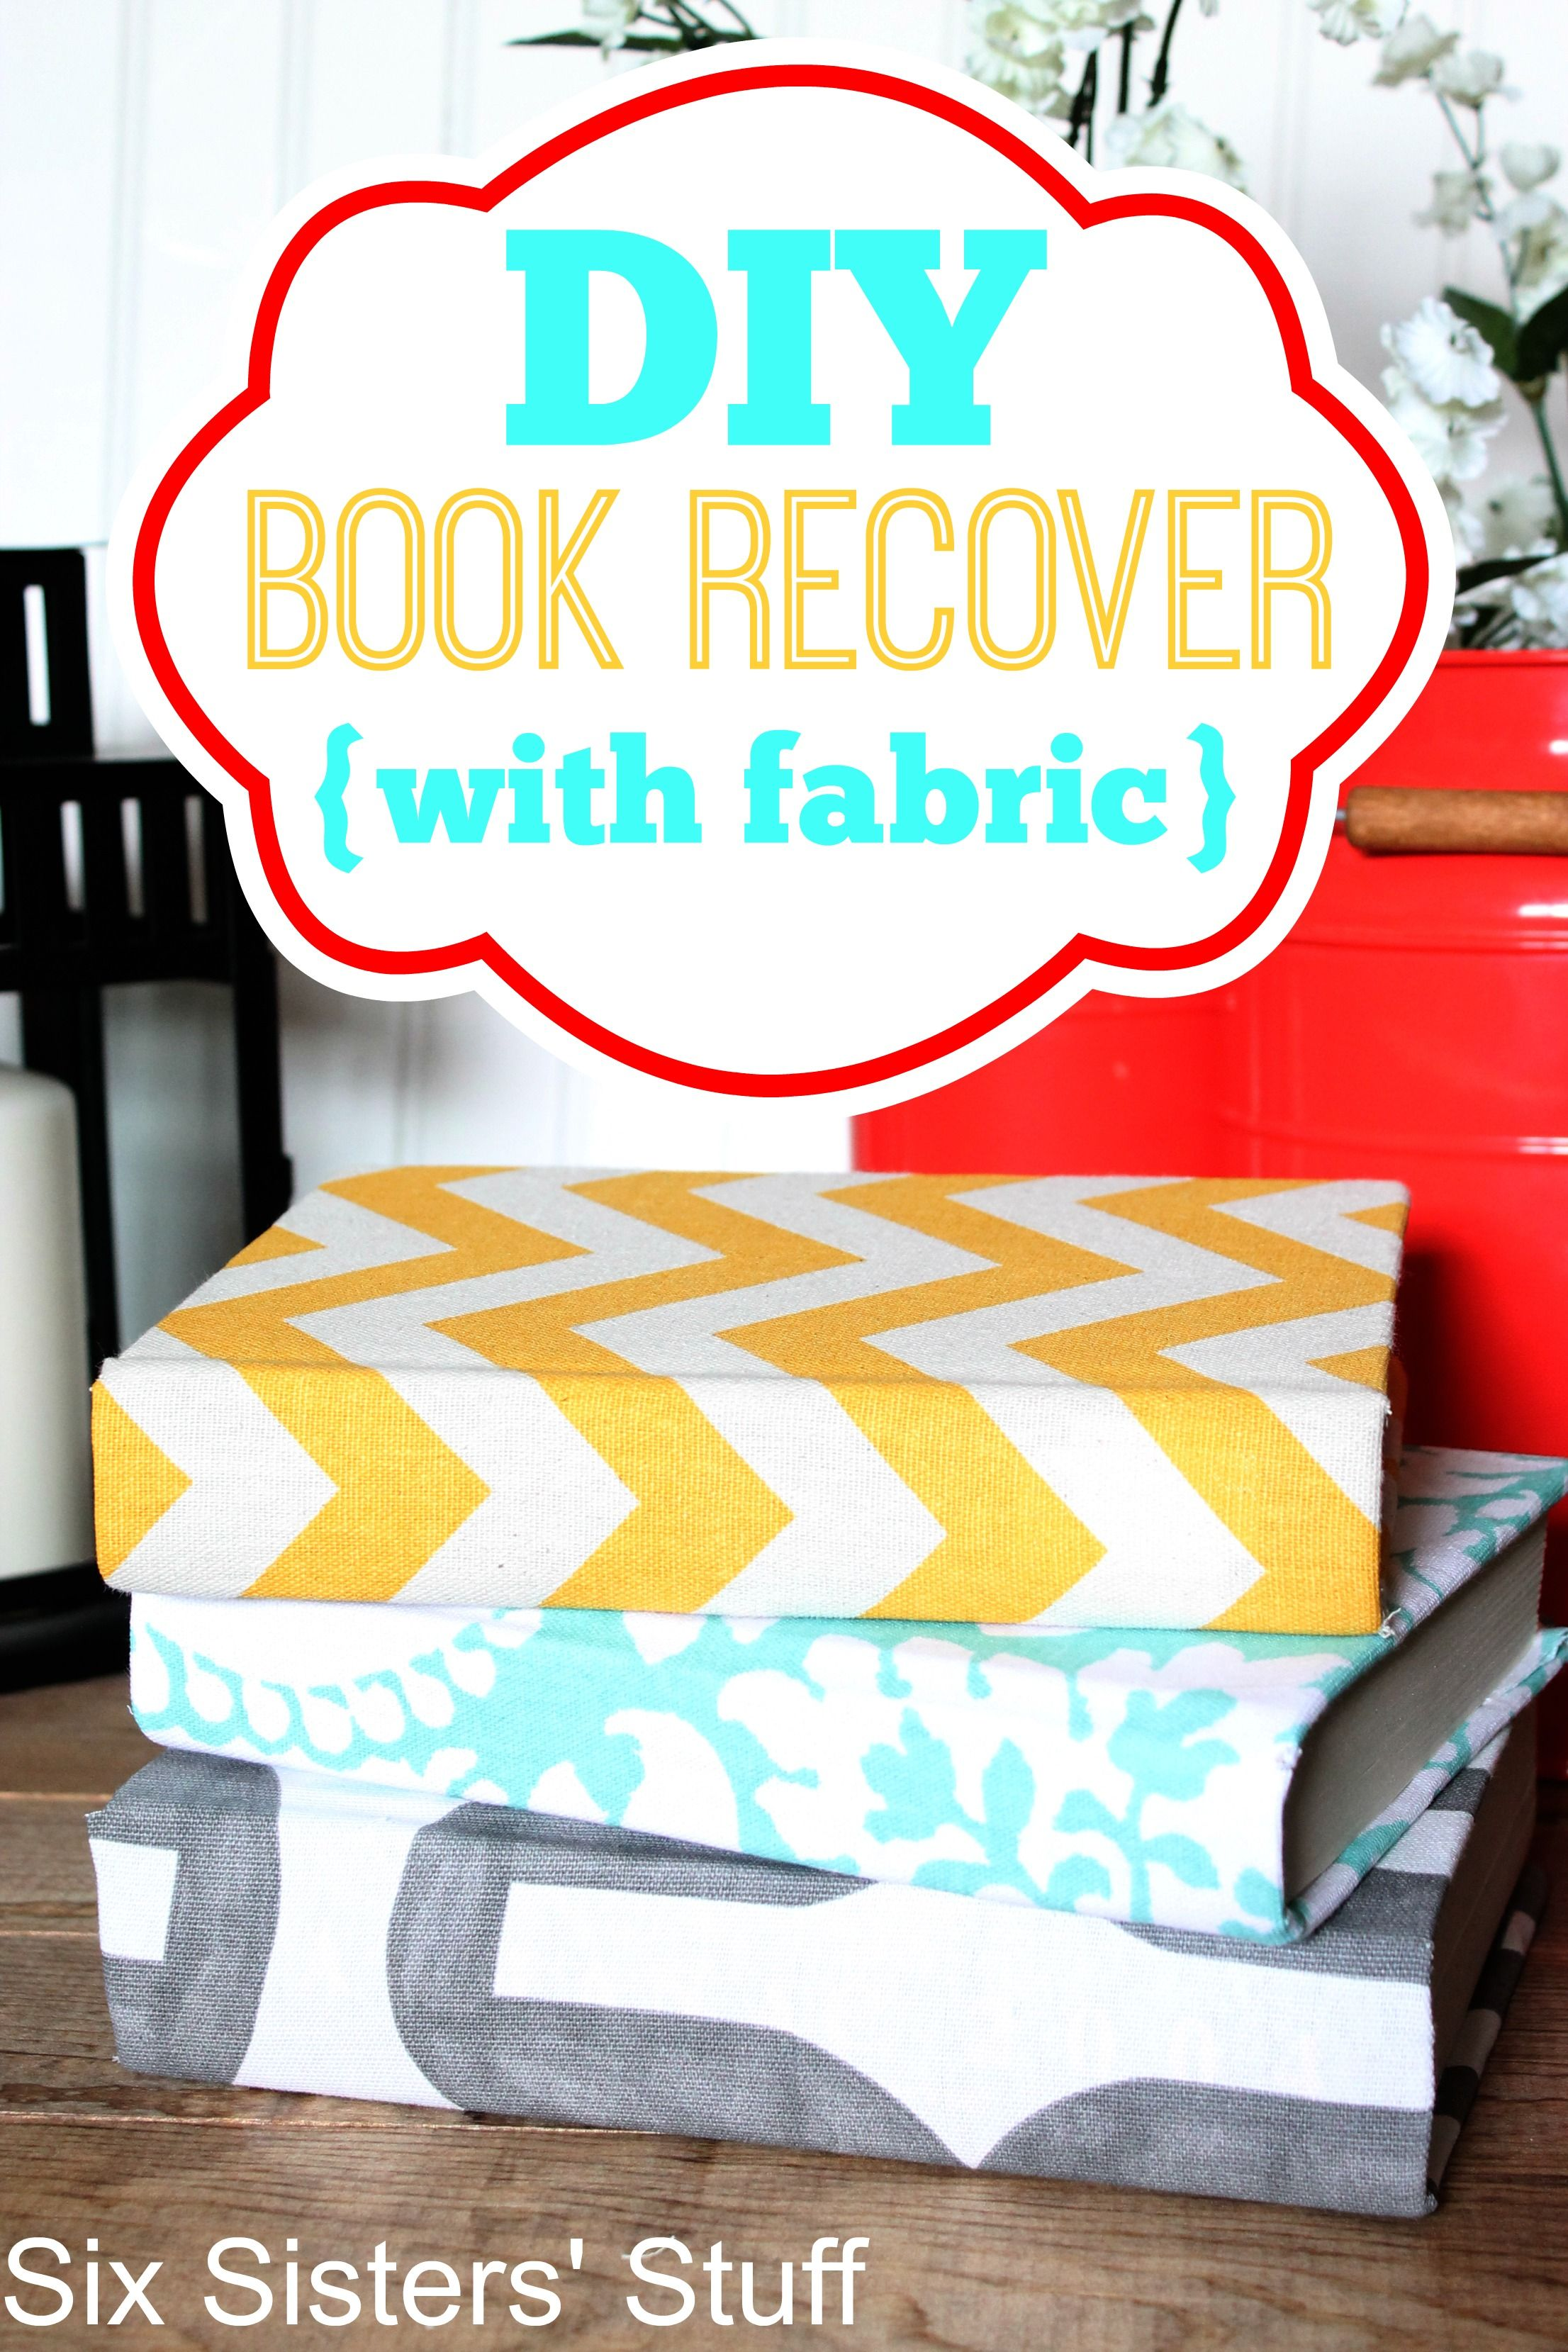 DIY Book Recover with Fabric from Six Sisters' Stuff! Such